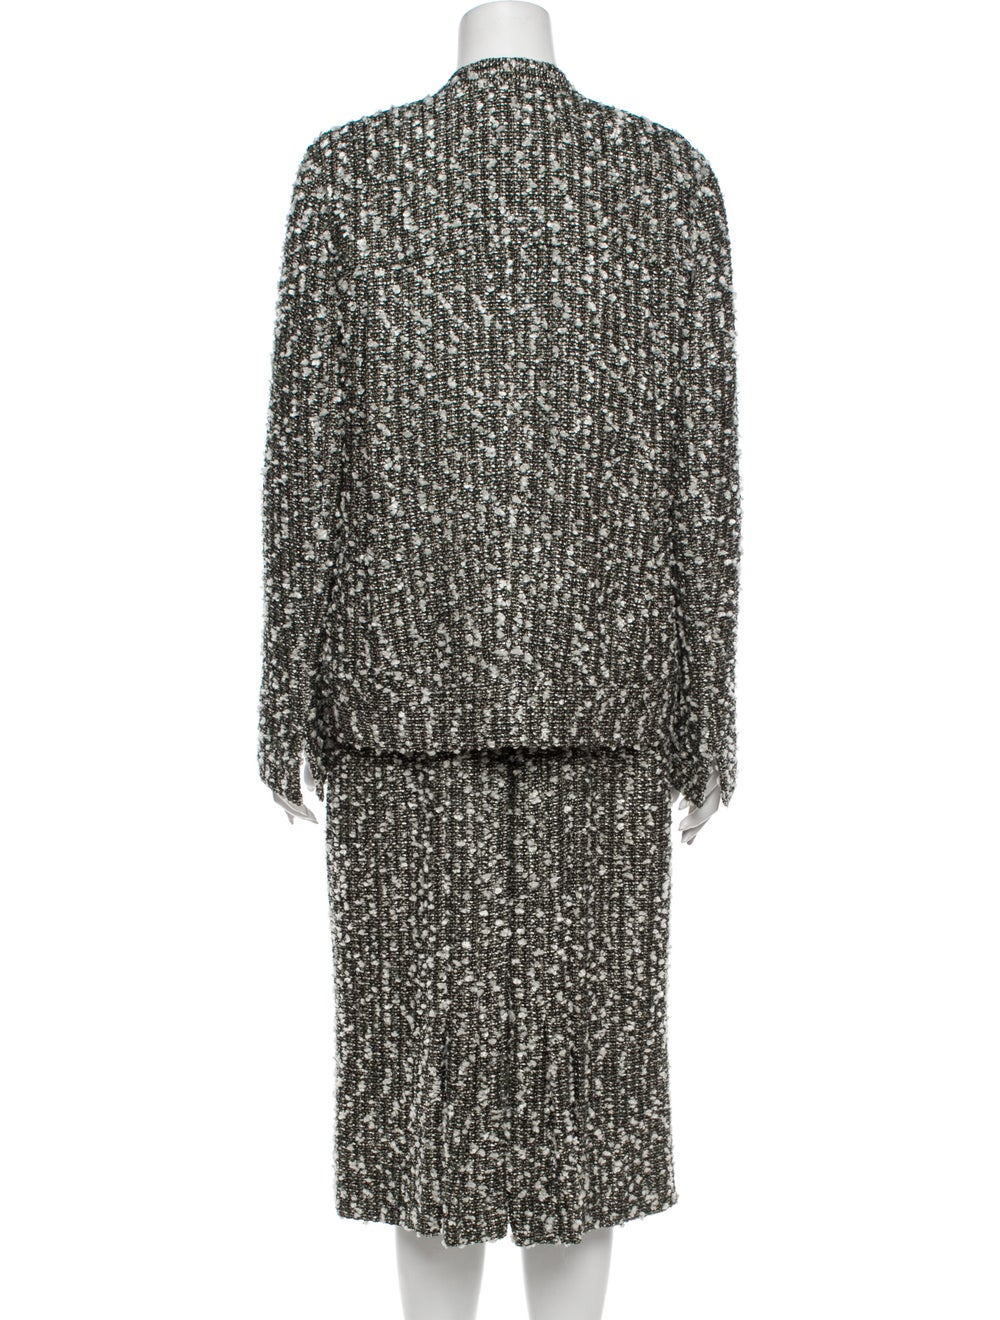 Chanel 2004 Tweed Pattern Dress Set Grey - image 3